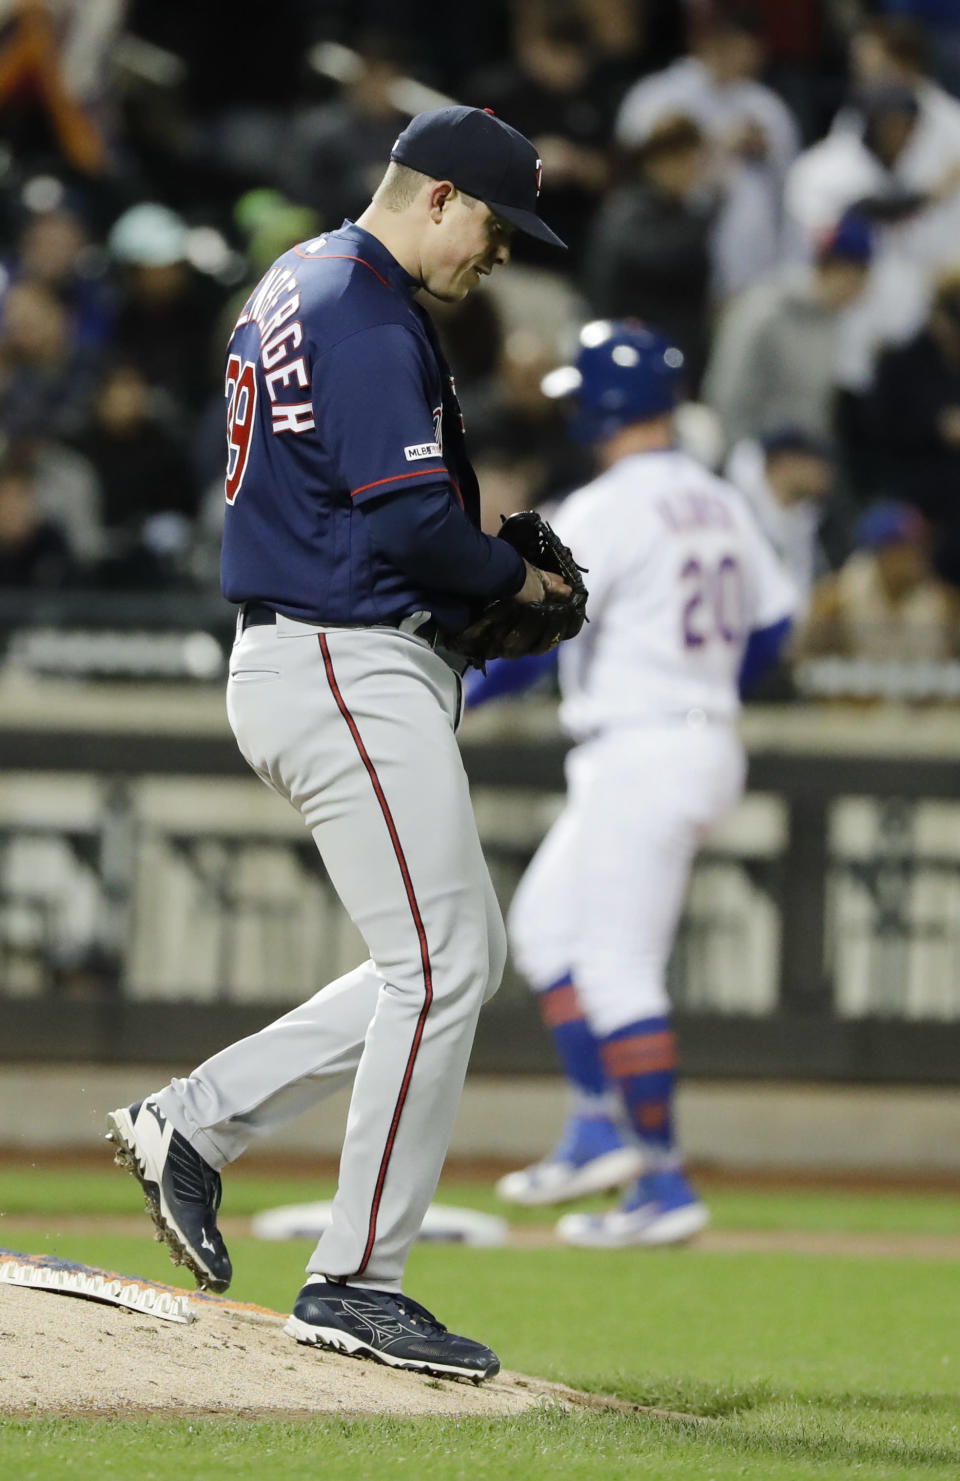 Minnesota Twins relief pitcher Trevor Hildenberger reacts after walking in a run during the fifth inning of the team's baseball game against the New York Mets on Wednesday, April 10, 2019, in New York. (AP Photo/Frank Franklin II)